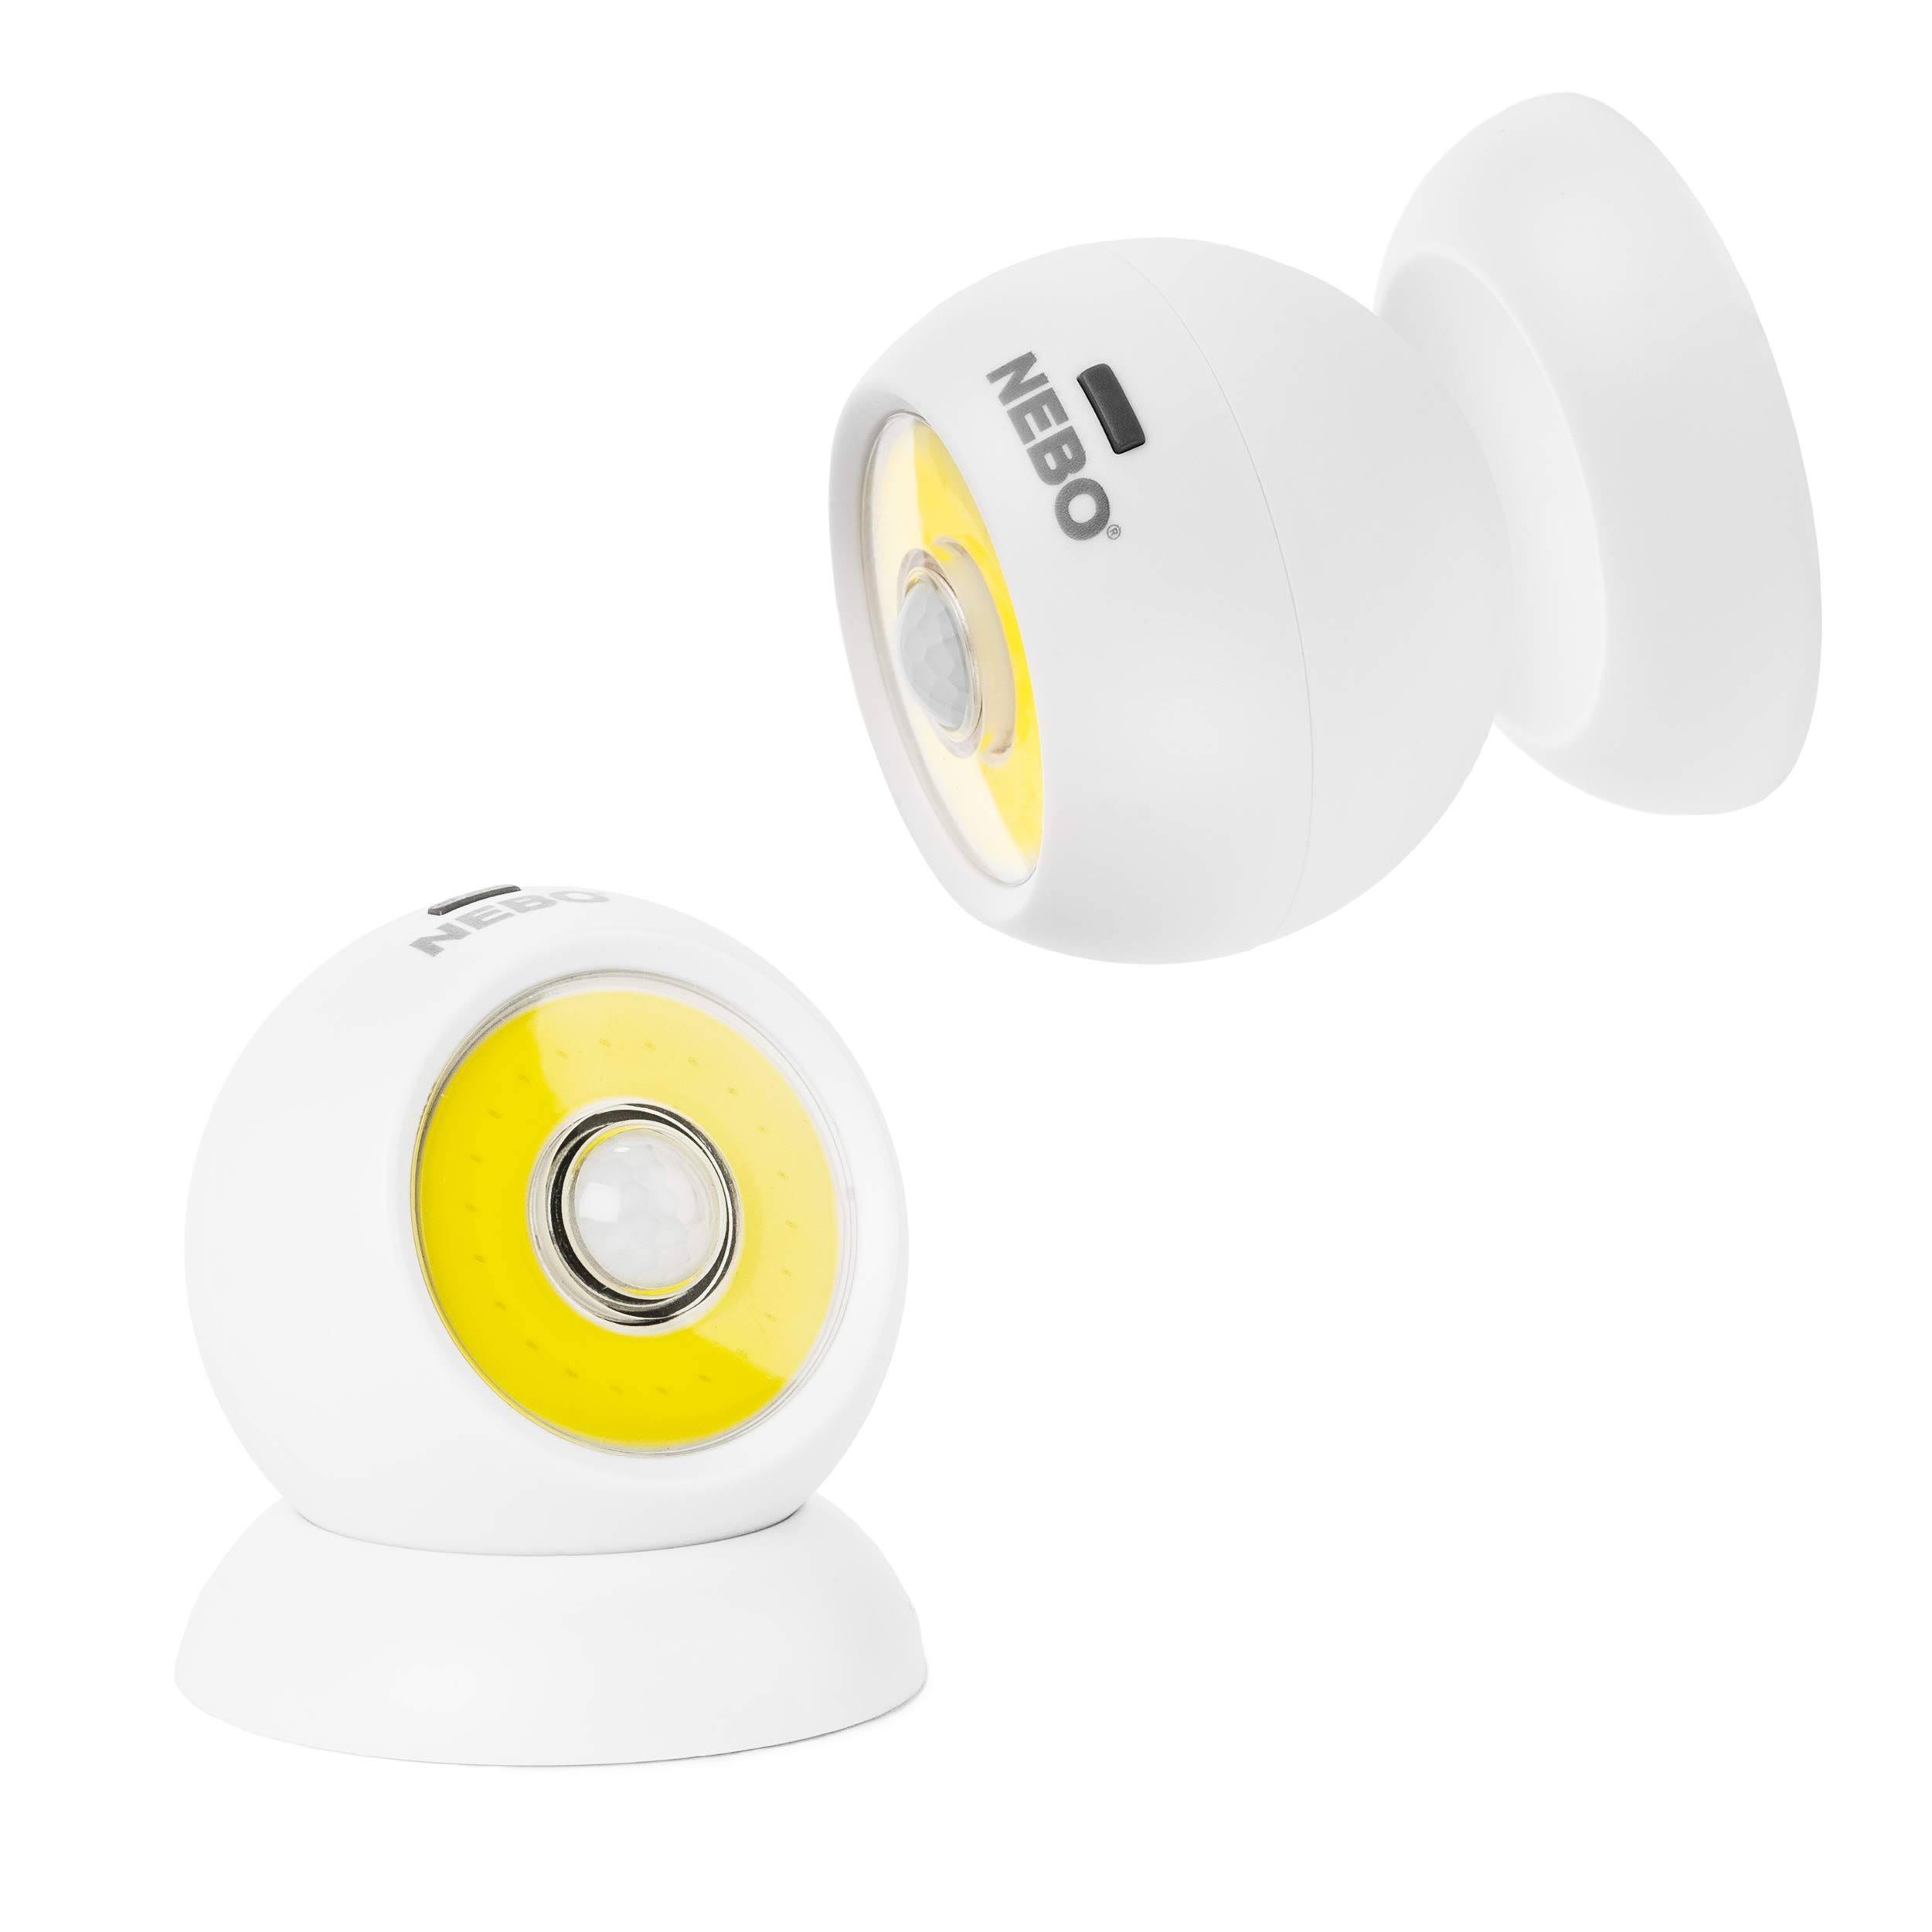 Nebo Eye Smart Sensor Light